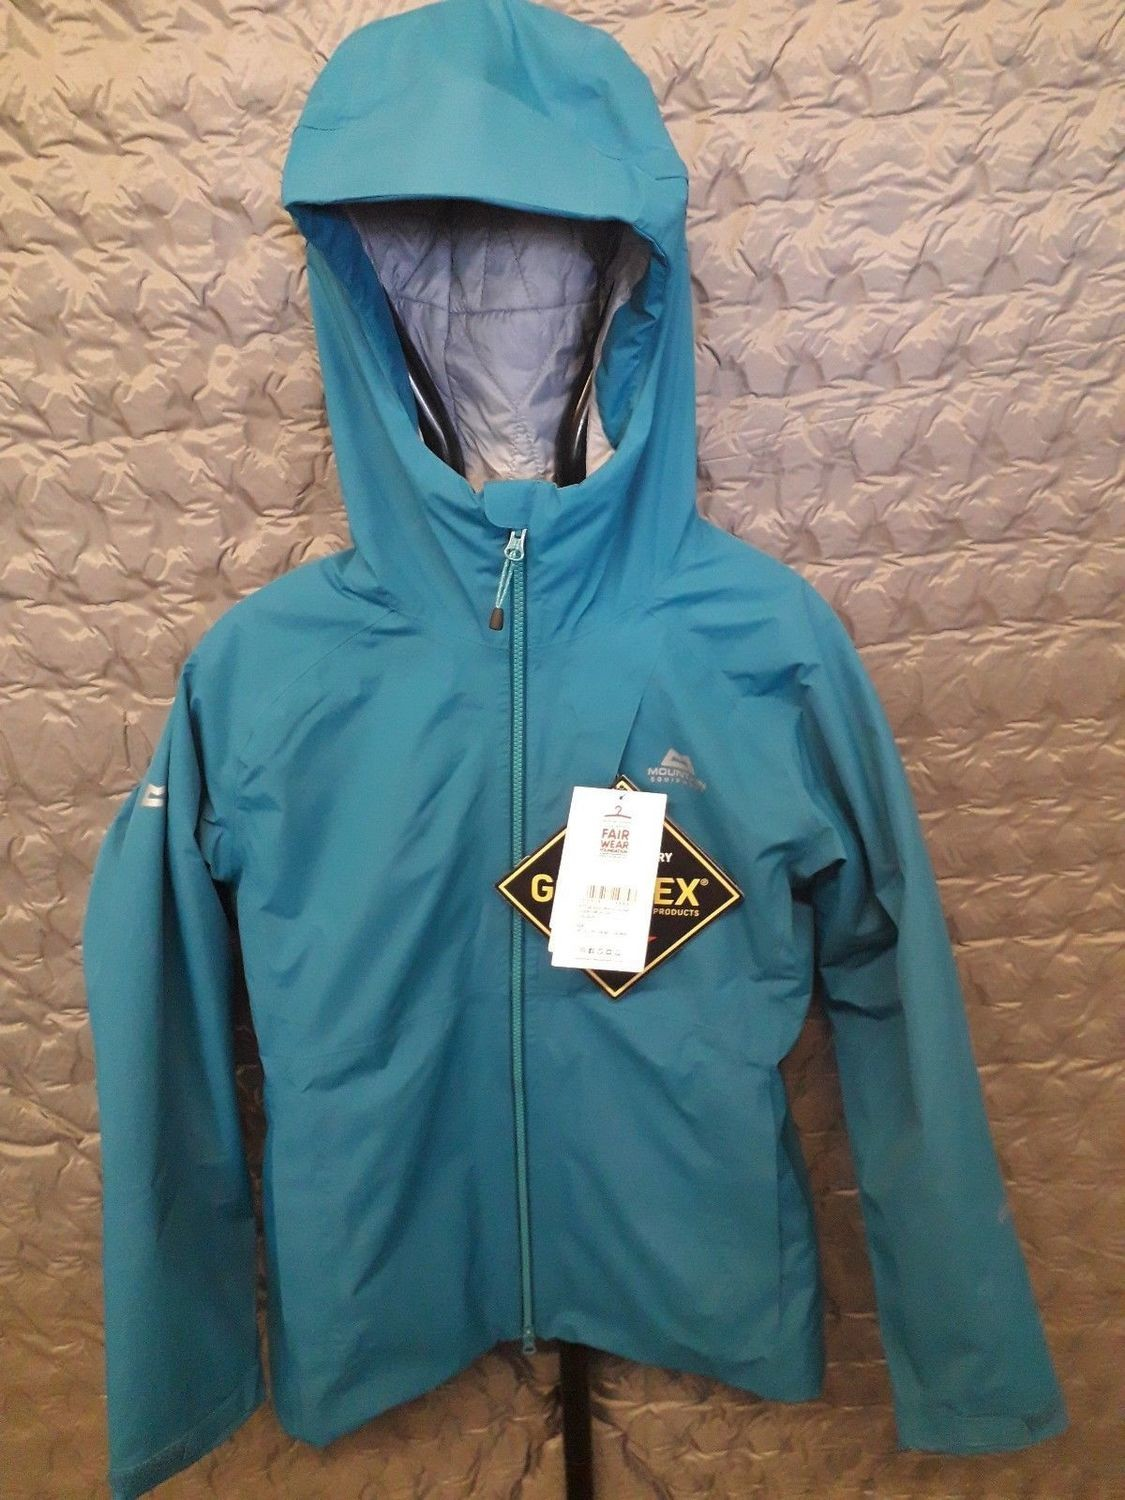 MOUNTAIN EQUIPMENT ALTAI GORETEX INSULATED JACKET TASMAN BLUE 12